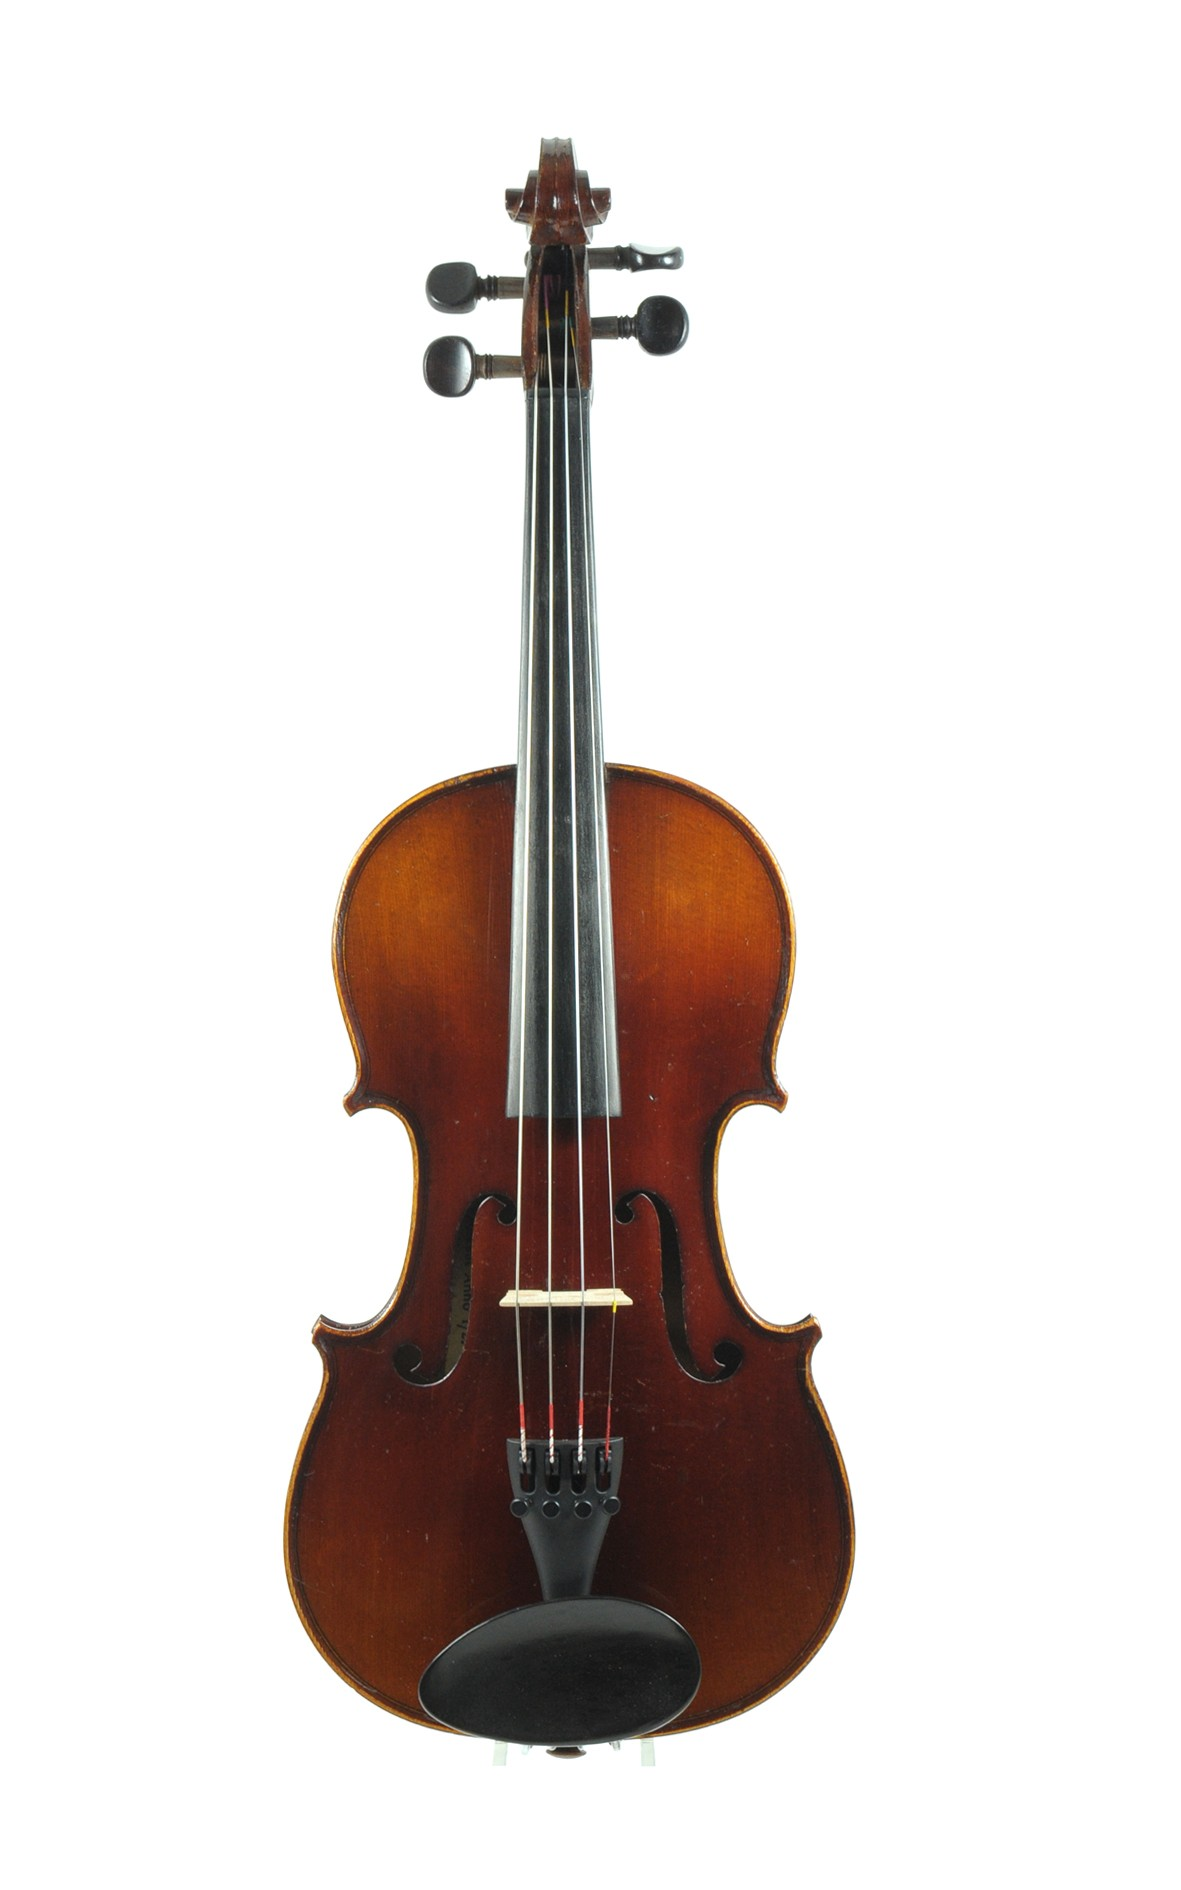 3/4 - Antique, well preserved French violin